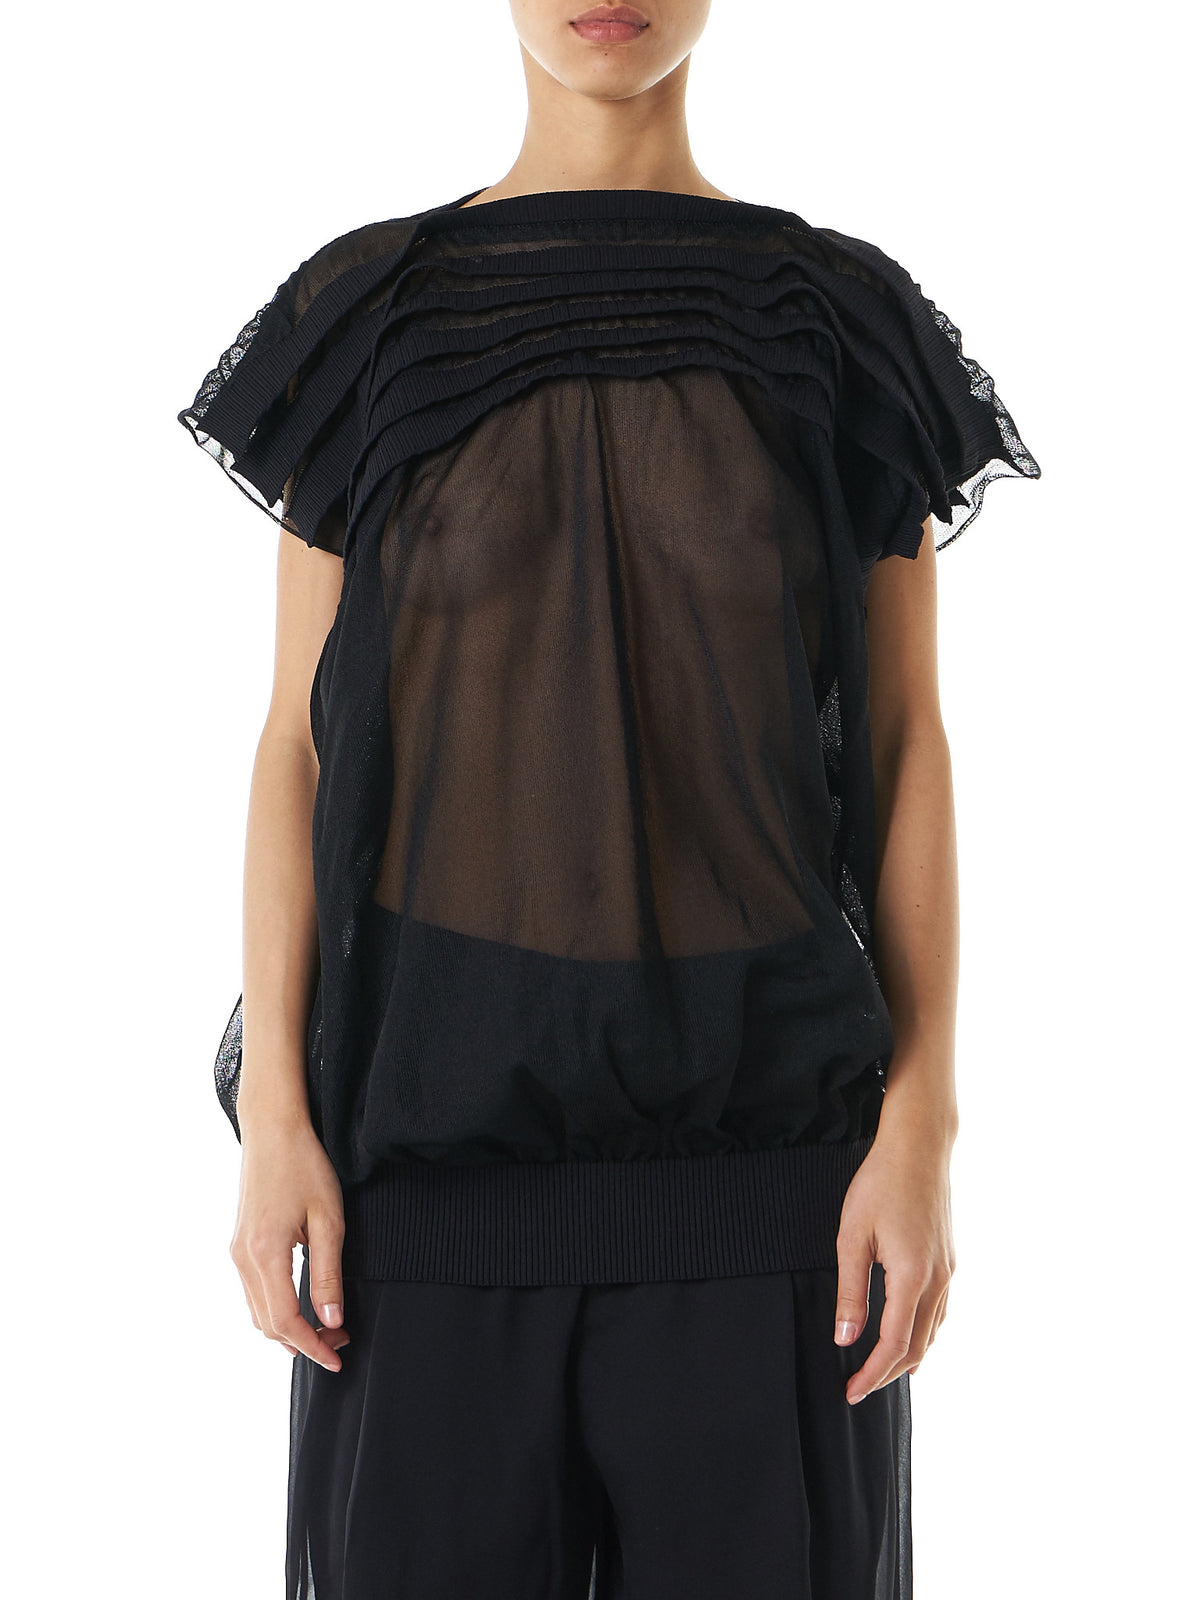 Tiered 'Shutter' Blouse (JS-N016-051-1) - H. Lorenzo